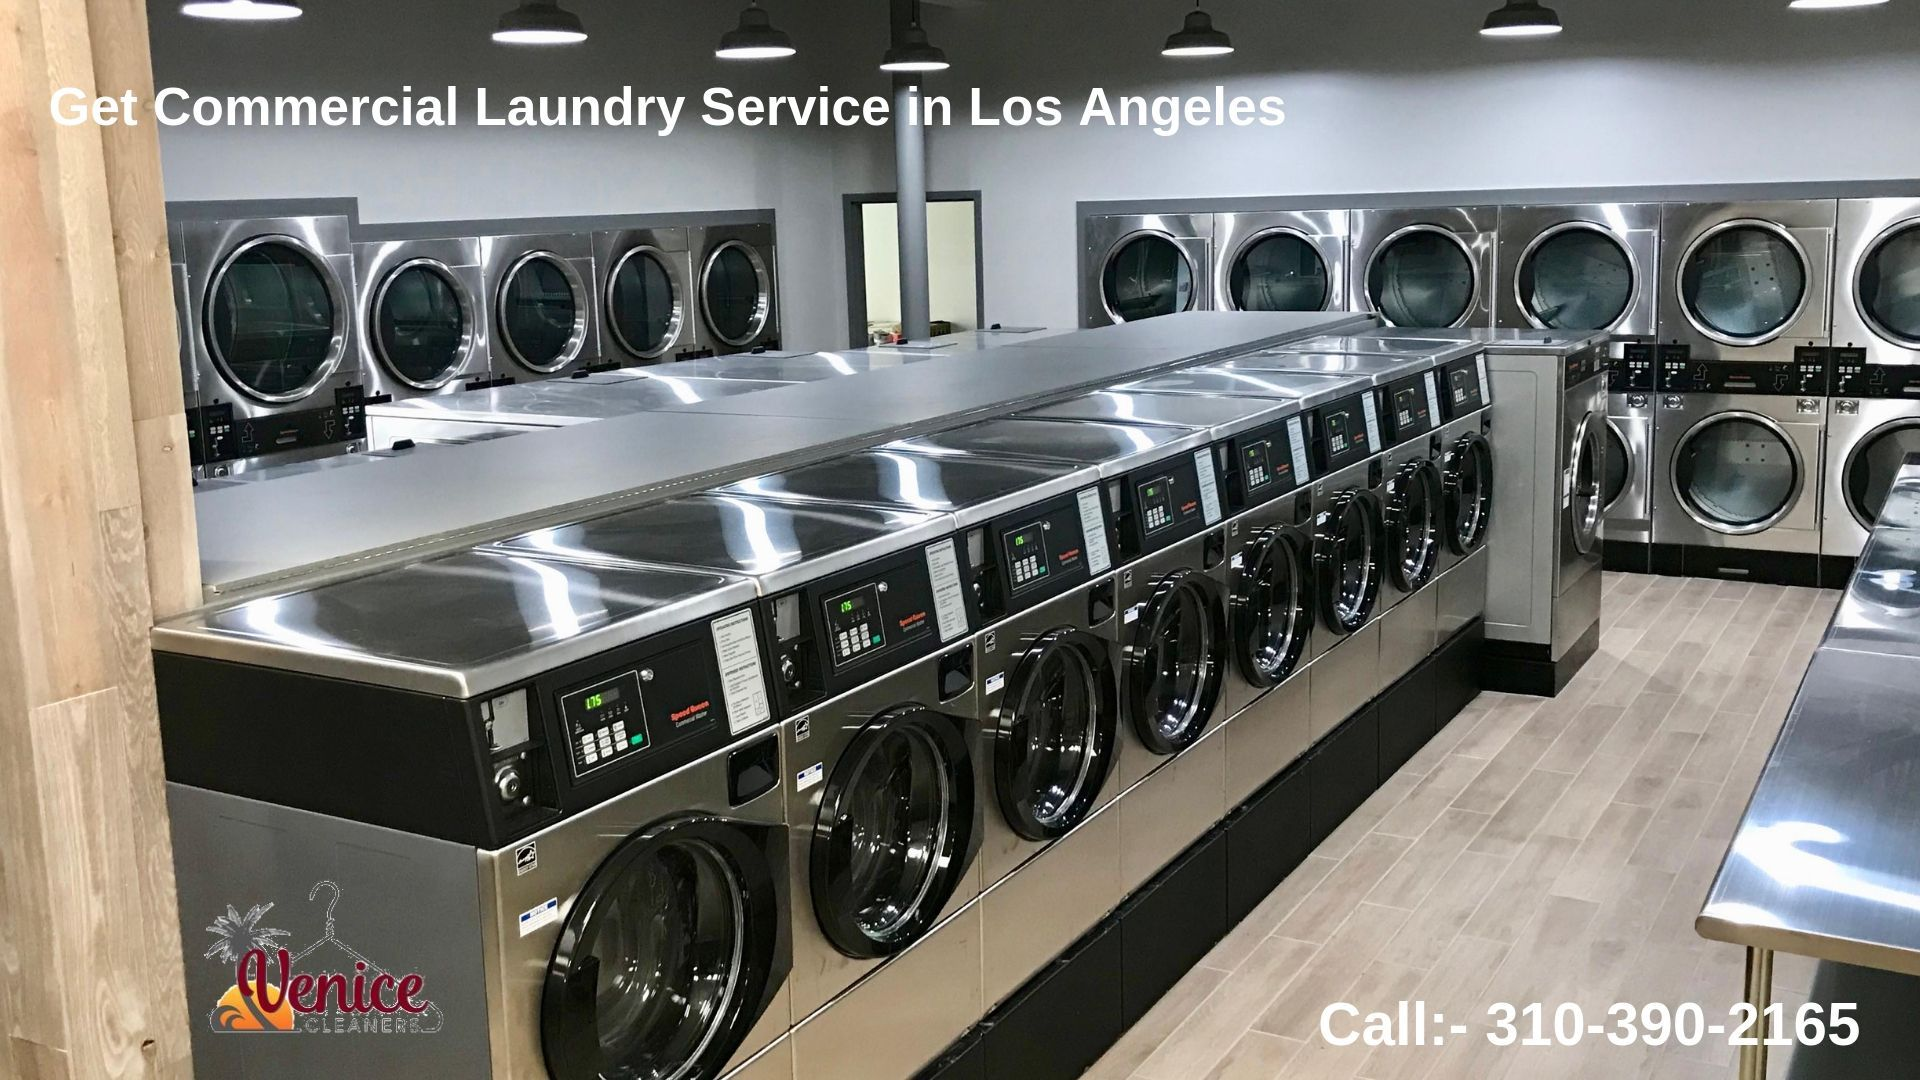 Laundry Commerciallaundry Los Angeles Commercial Drycleaning